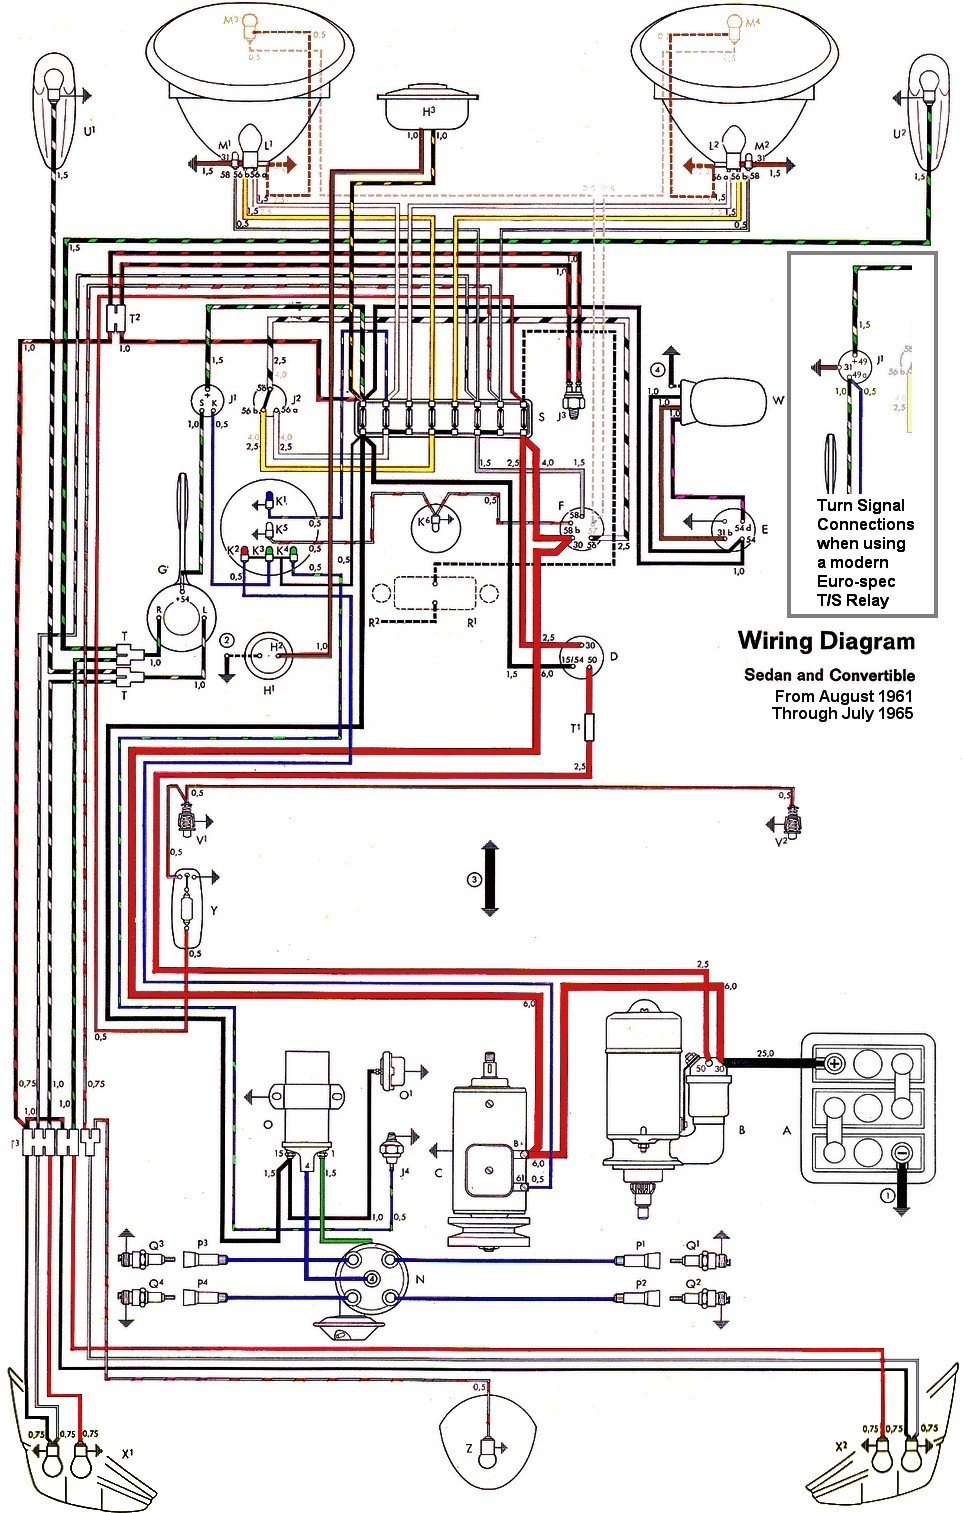 bug_62 65withinset vw wiring harness diagram cj7 wiring harness diagram \u2022 wiring DIY Lingerie Harness at virtualis.co